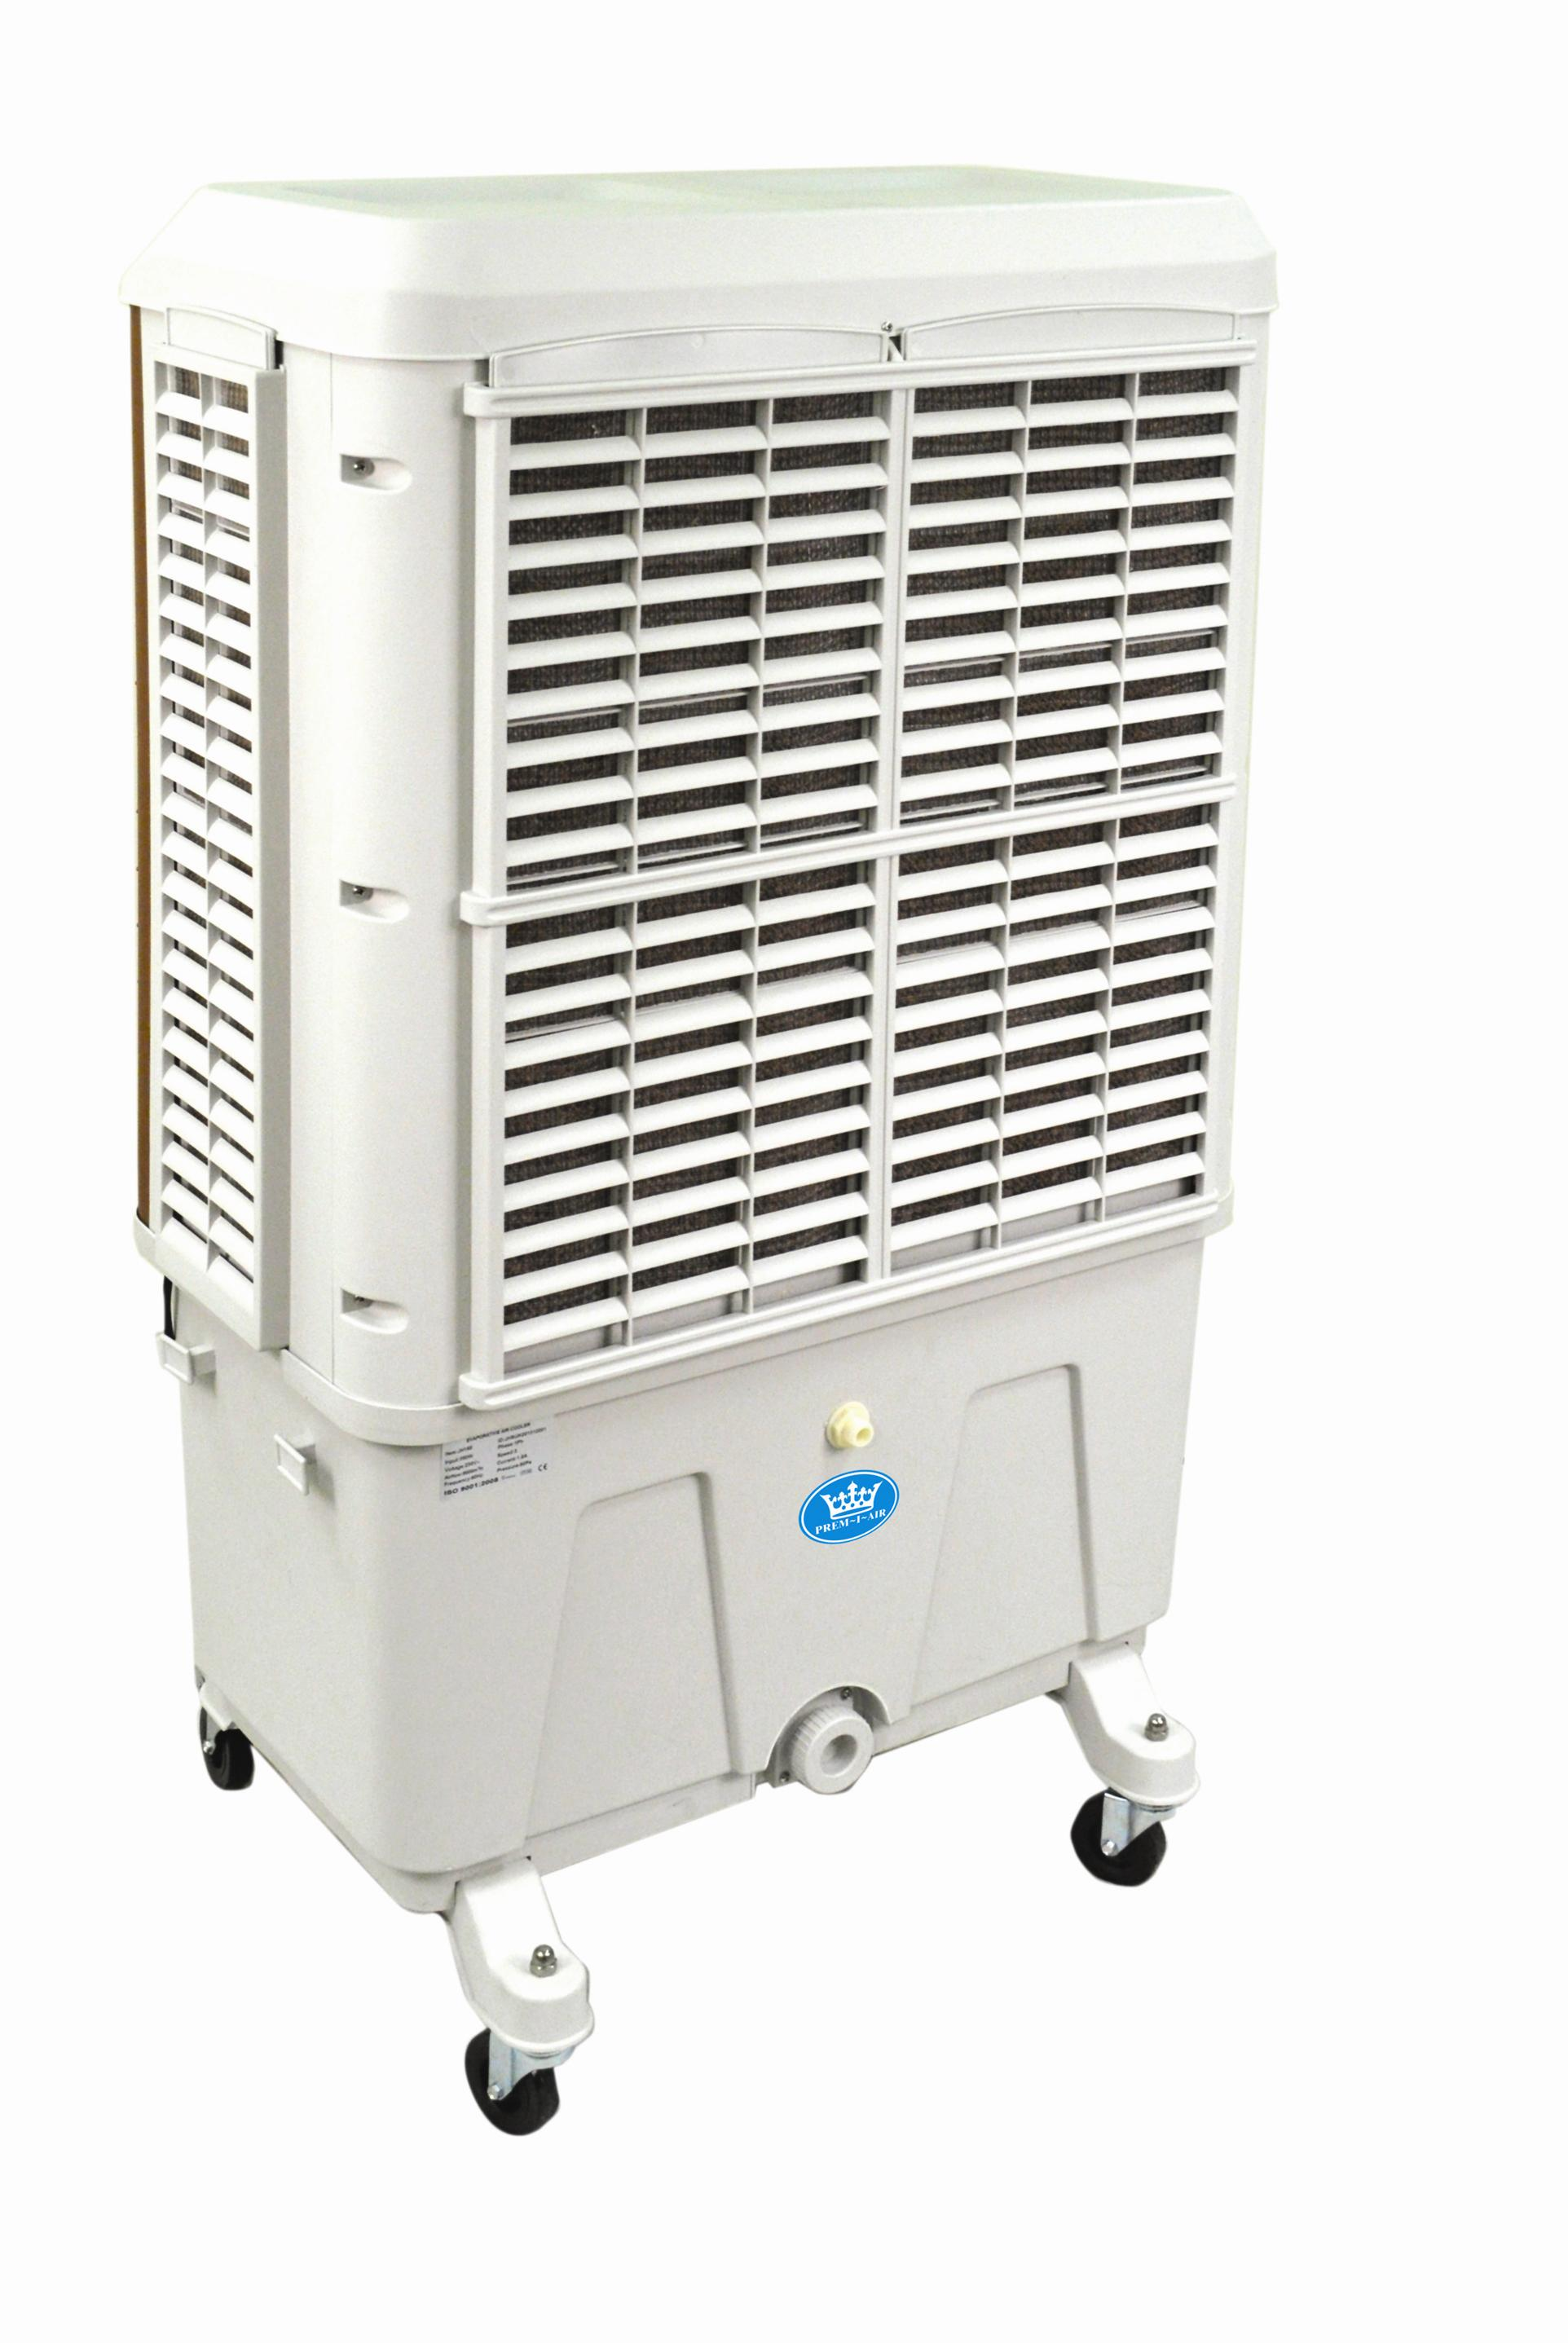 Evaporative Cooler For Pool : Prem i air eh l evaporative cooler with remote